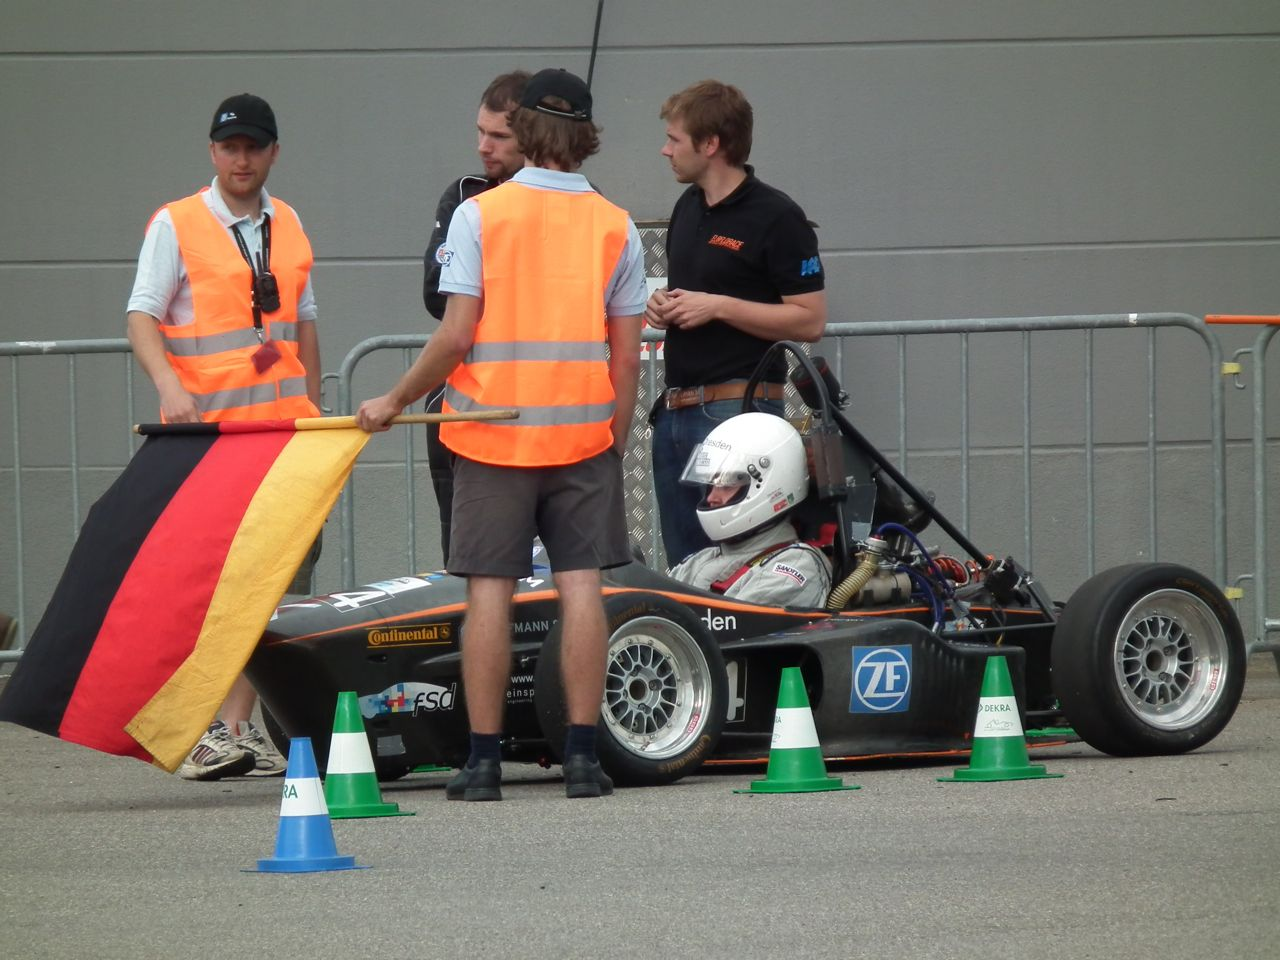 zf_racecamp_201102